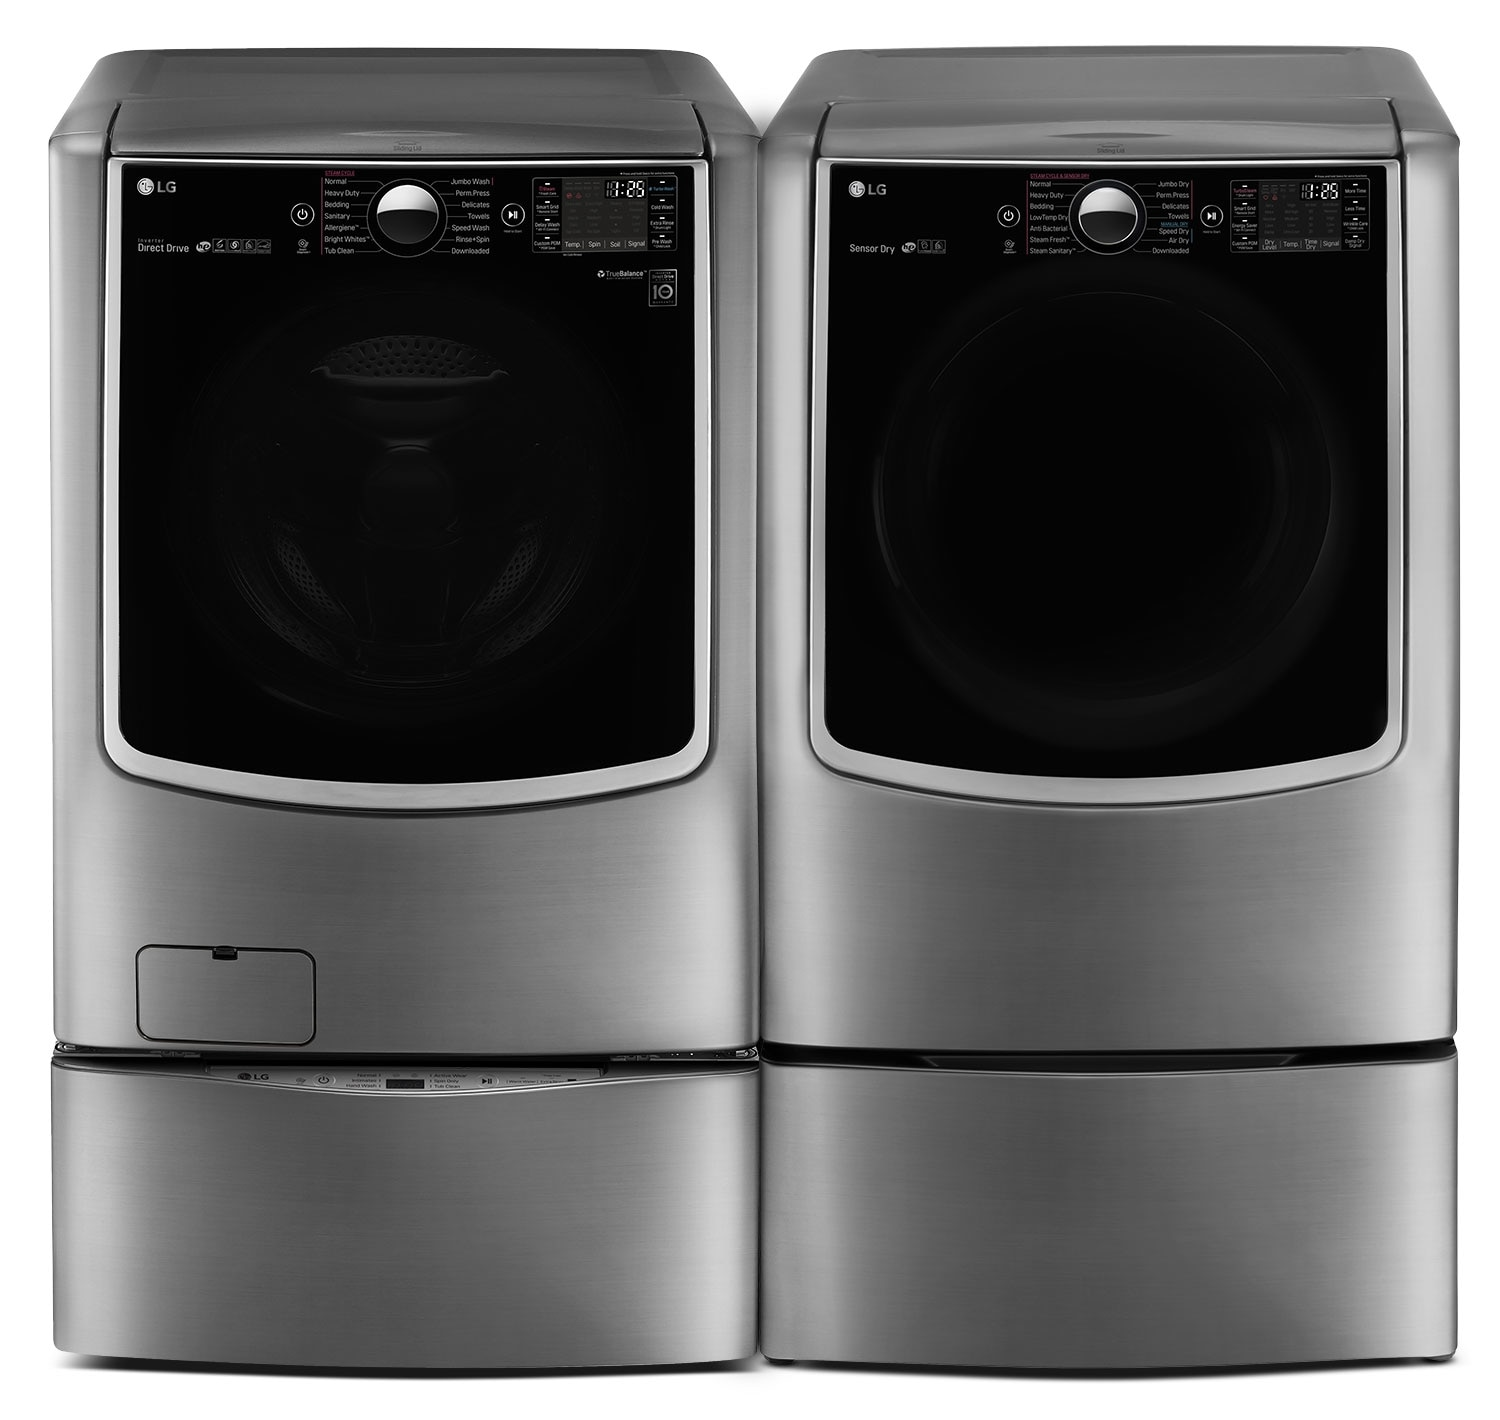 LG TWIN Wash™ 6.0 Cu. Ft. Washer, Pedestal Washer and 9.0 Cu. Ft. Gas Dryer - Graphite Steel